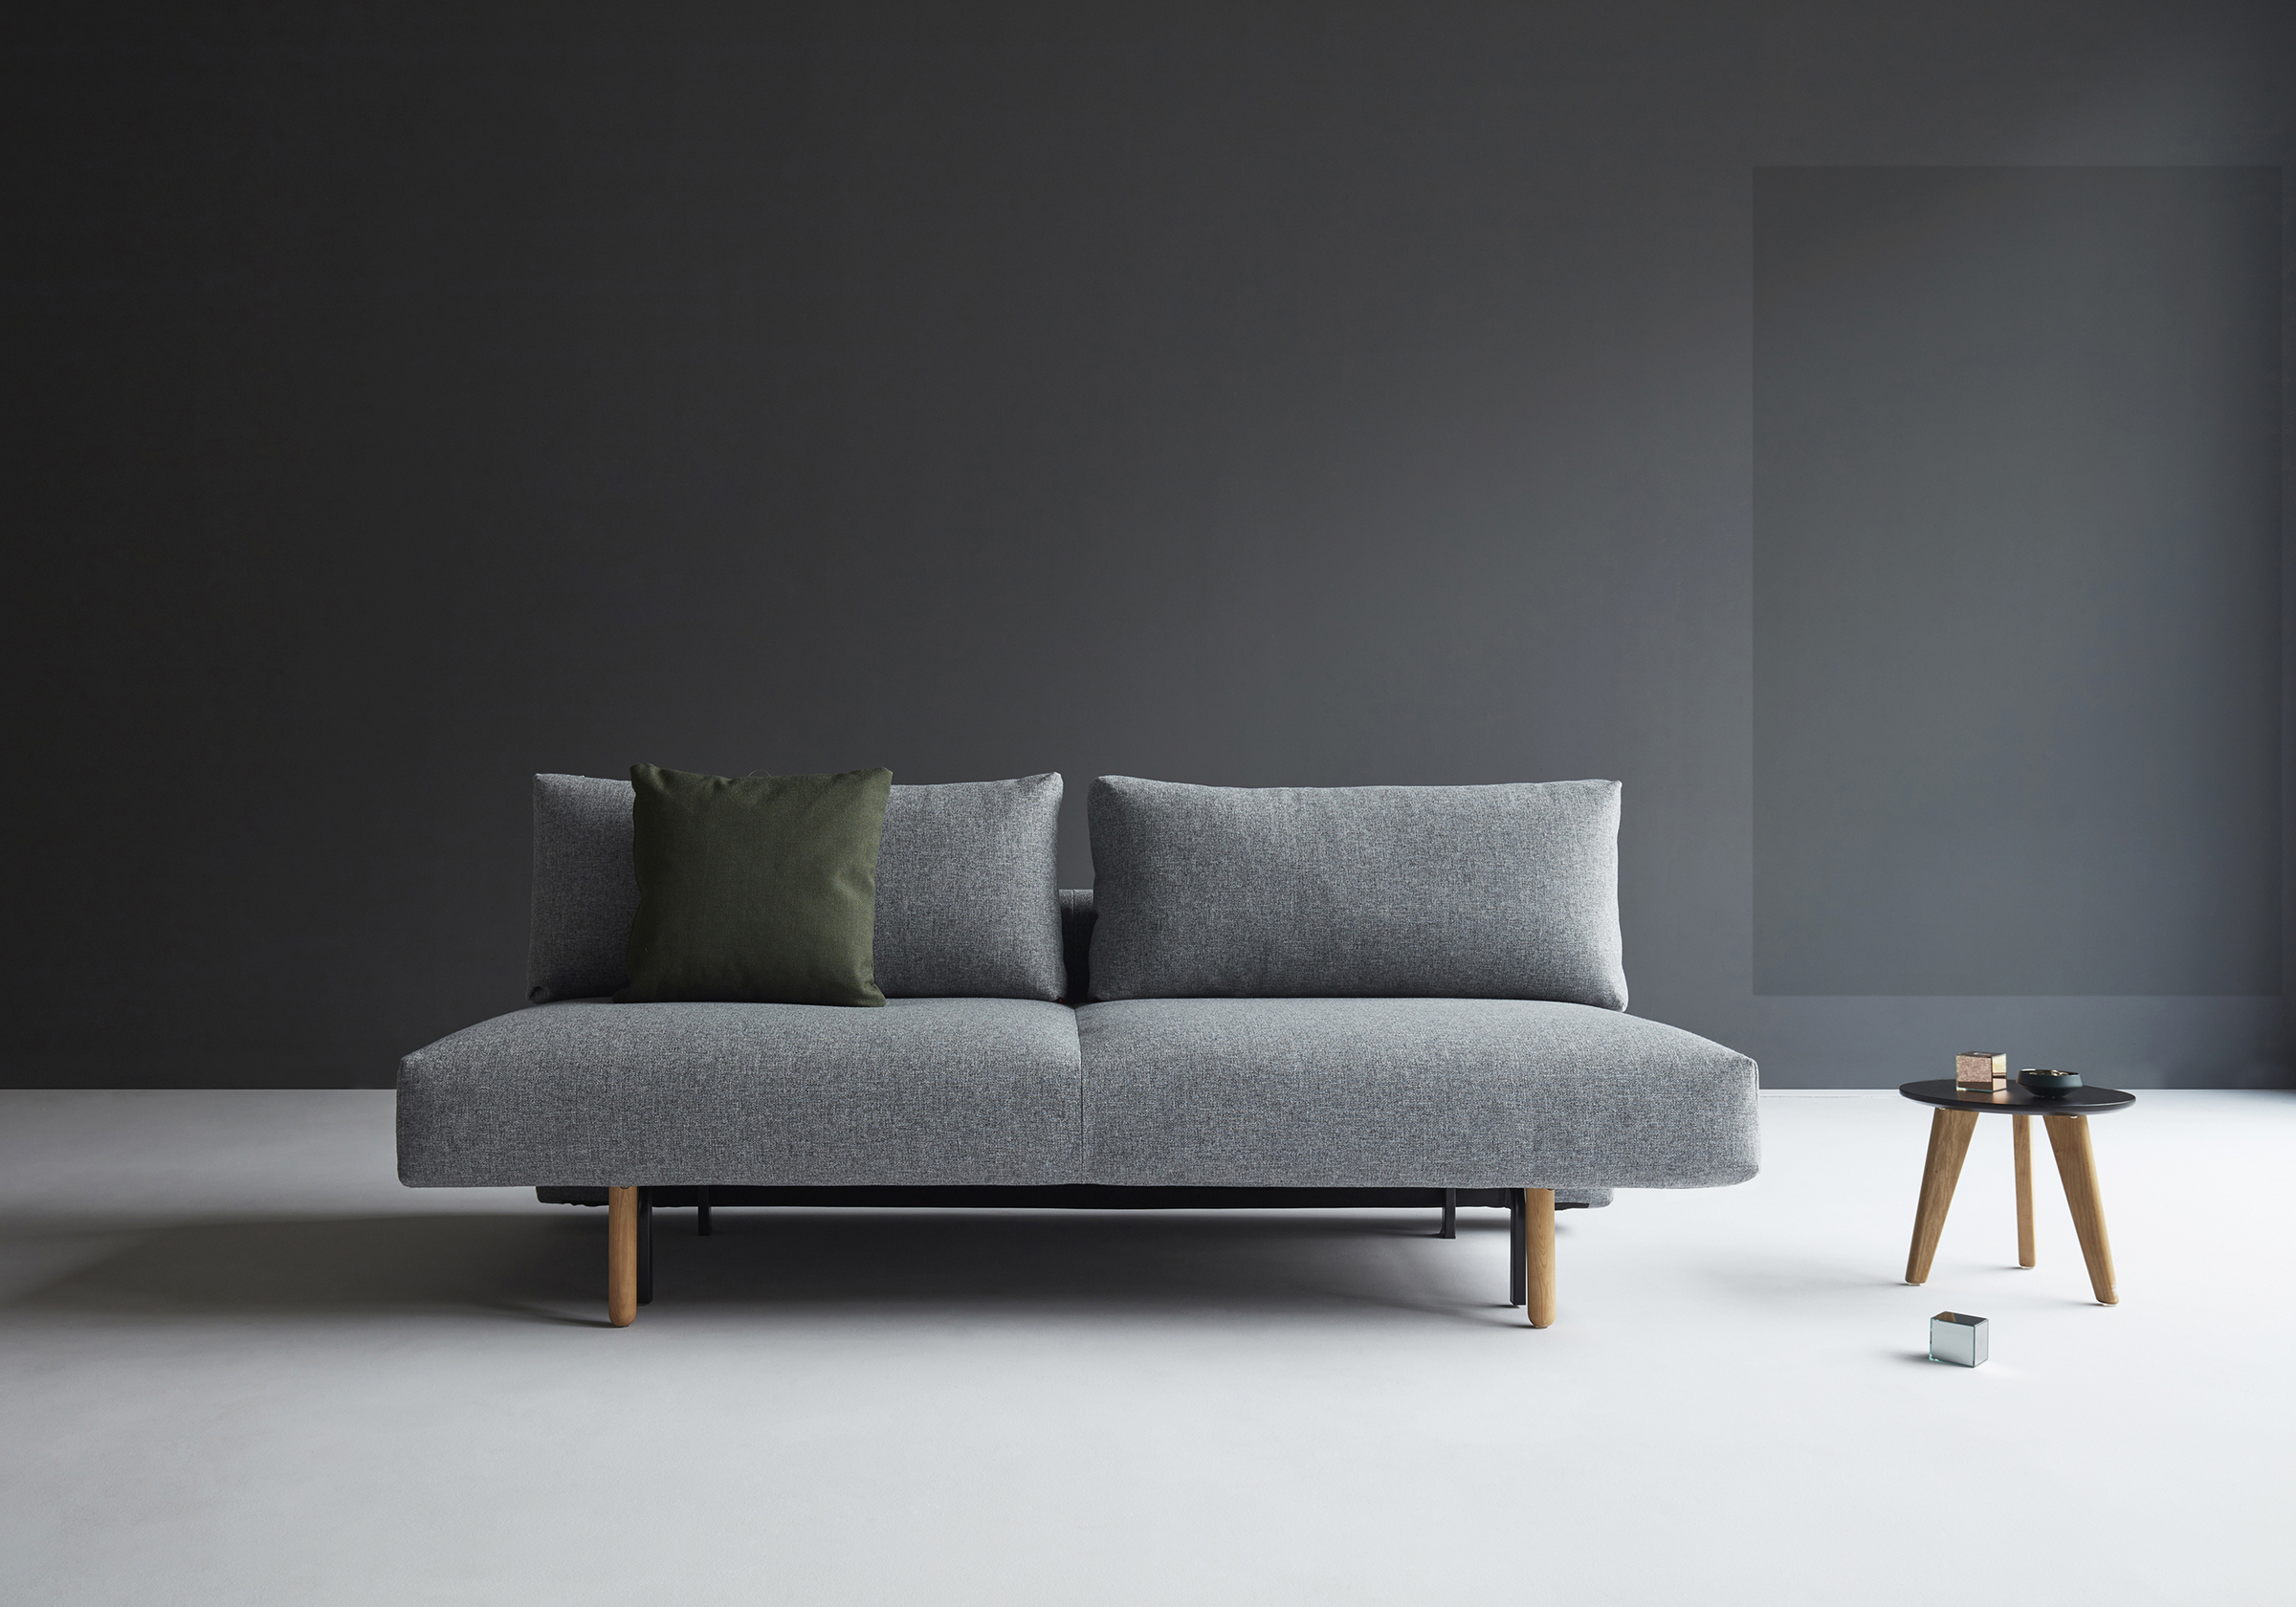 9 of the best minimalist sofa beds for small spaces